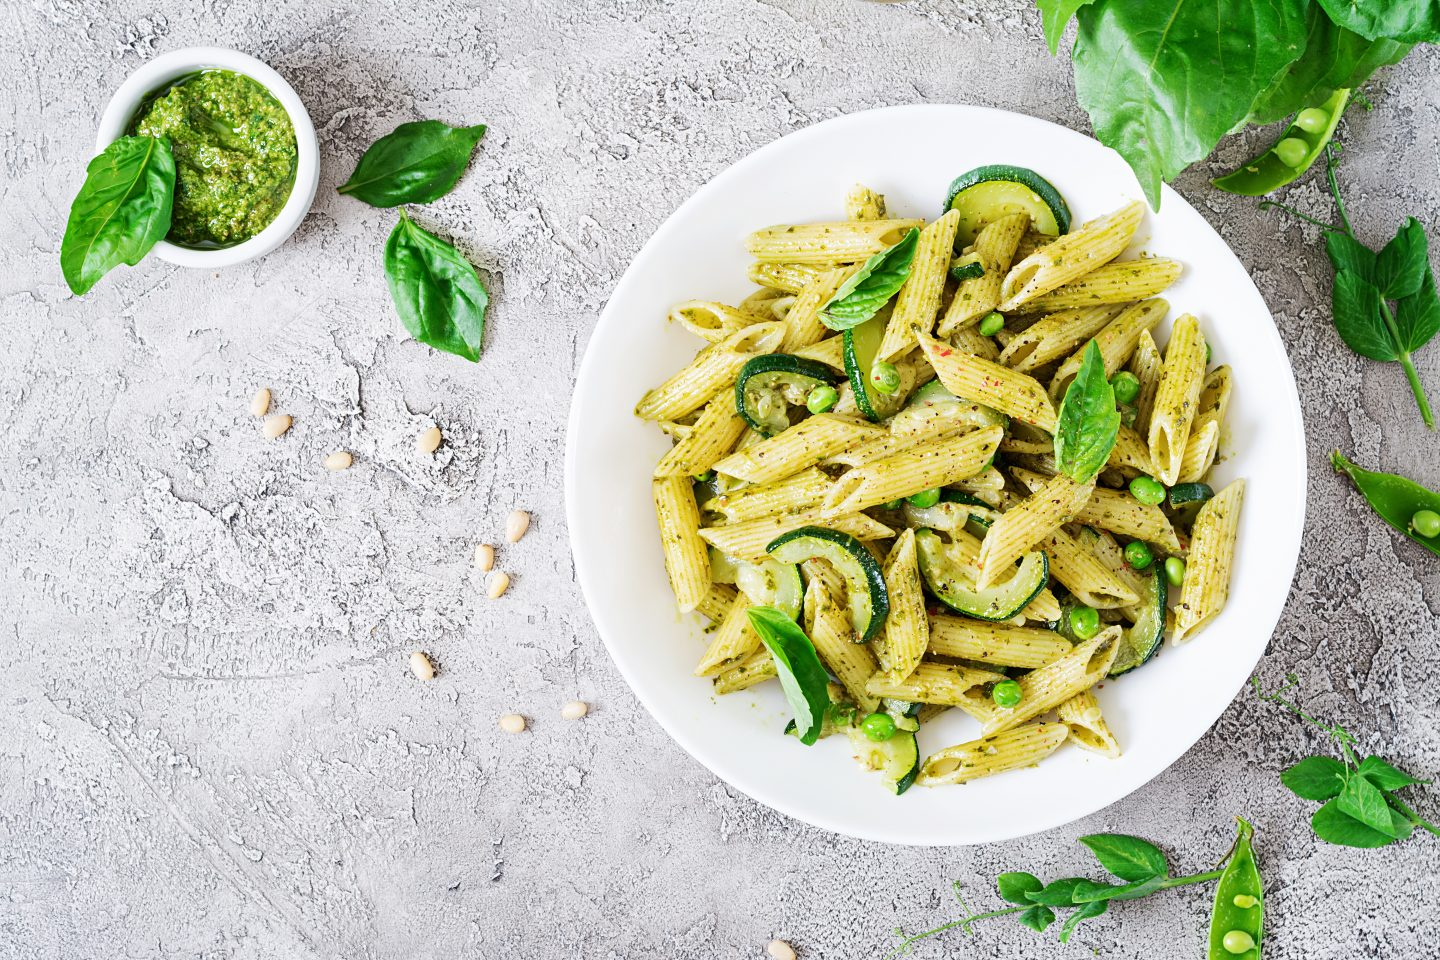 penne-pasta-with-pesto-sauce-zucchini-green-peas-and-basil-italian-food-top-view-flat-lay